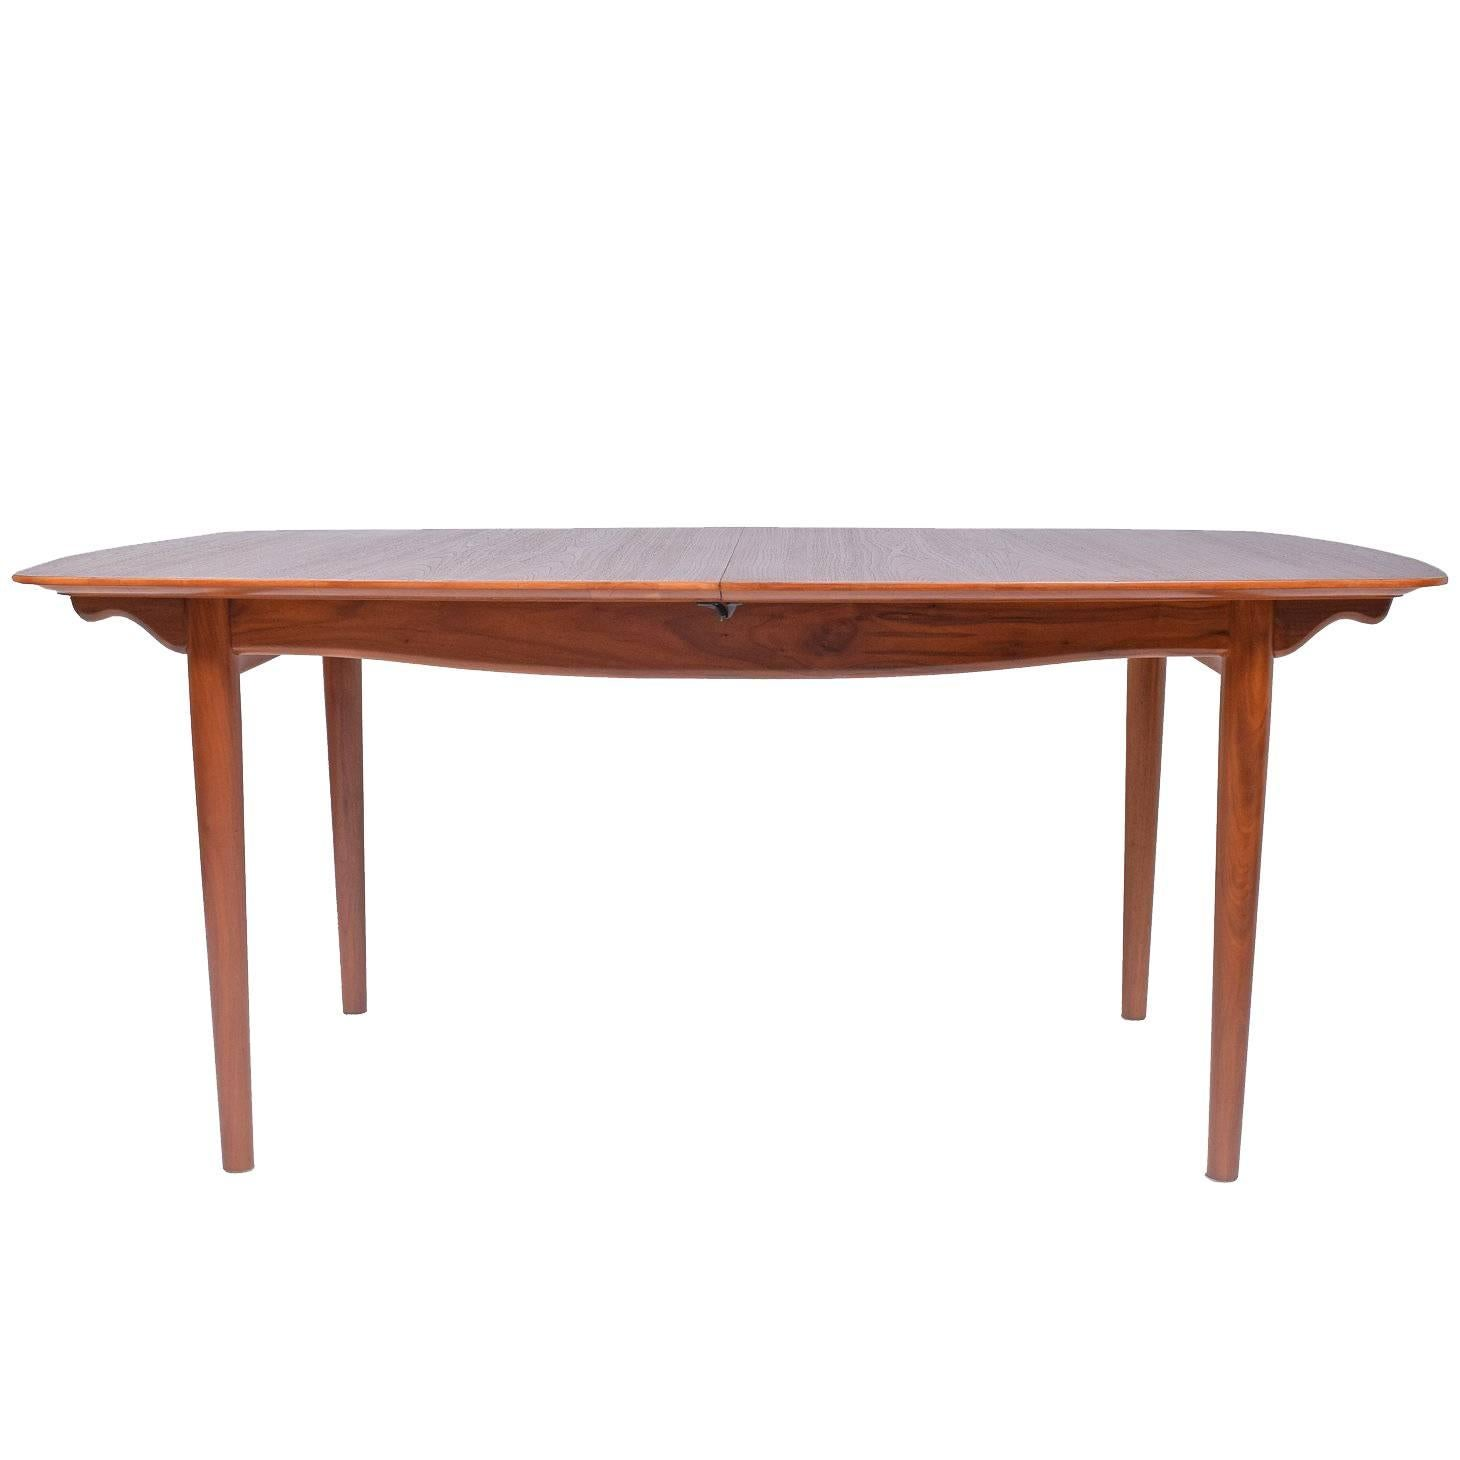 Baker Furniture Company Dining Room Tables 23 For Sale at 1stdibs